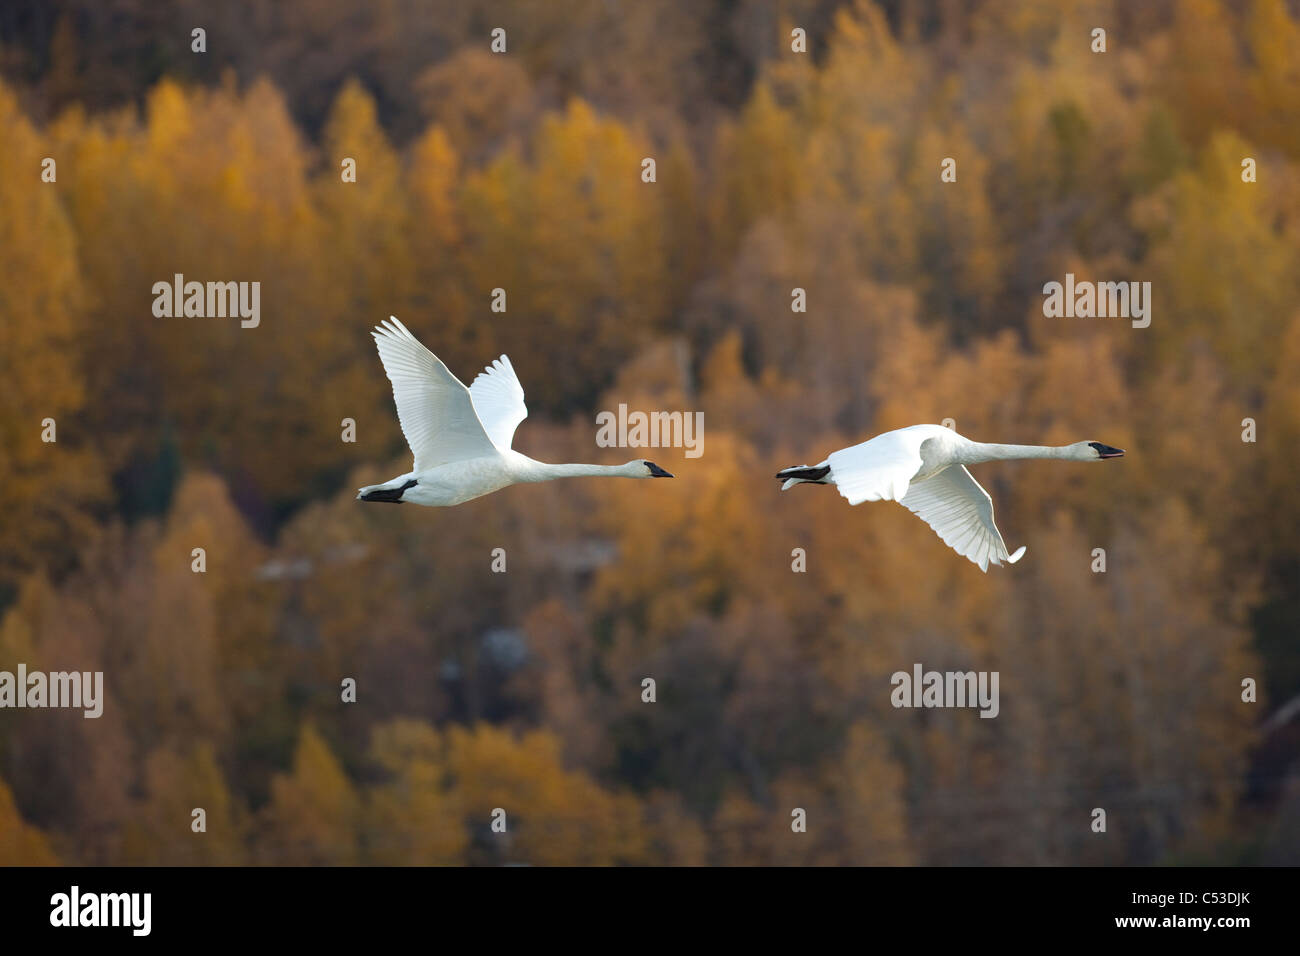 Two adult Trumpeter Swans fly over Potter Marsh near Anchorage, Southcentral Alaska, Autumn - Stock Image